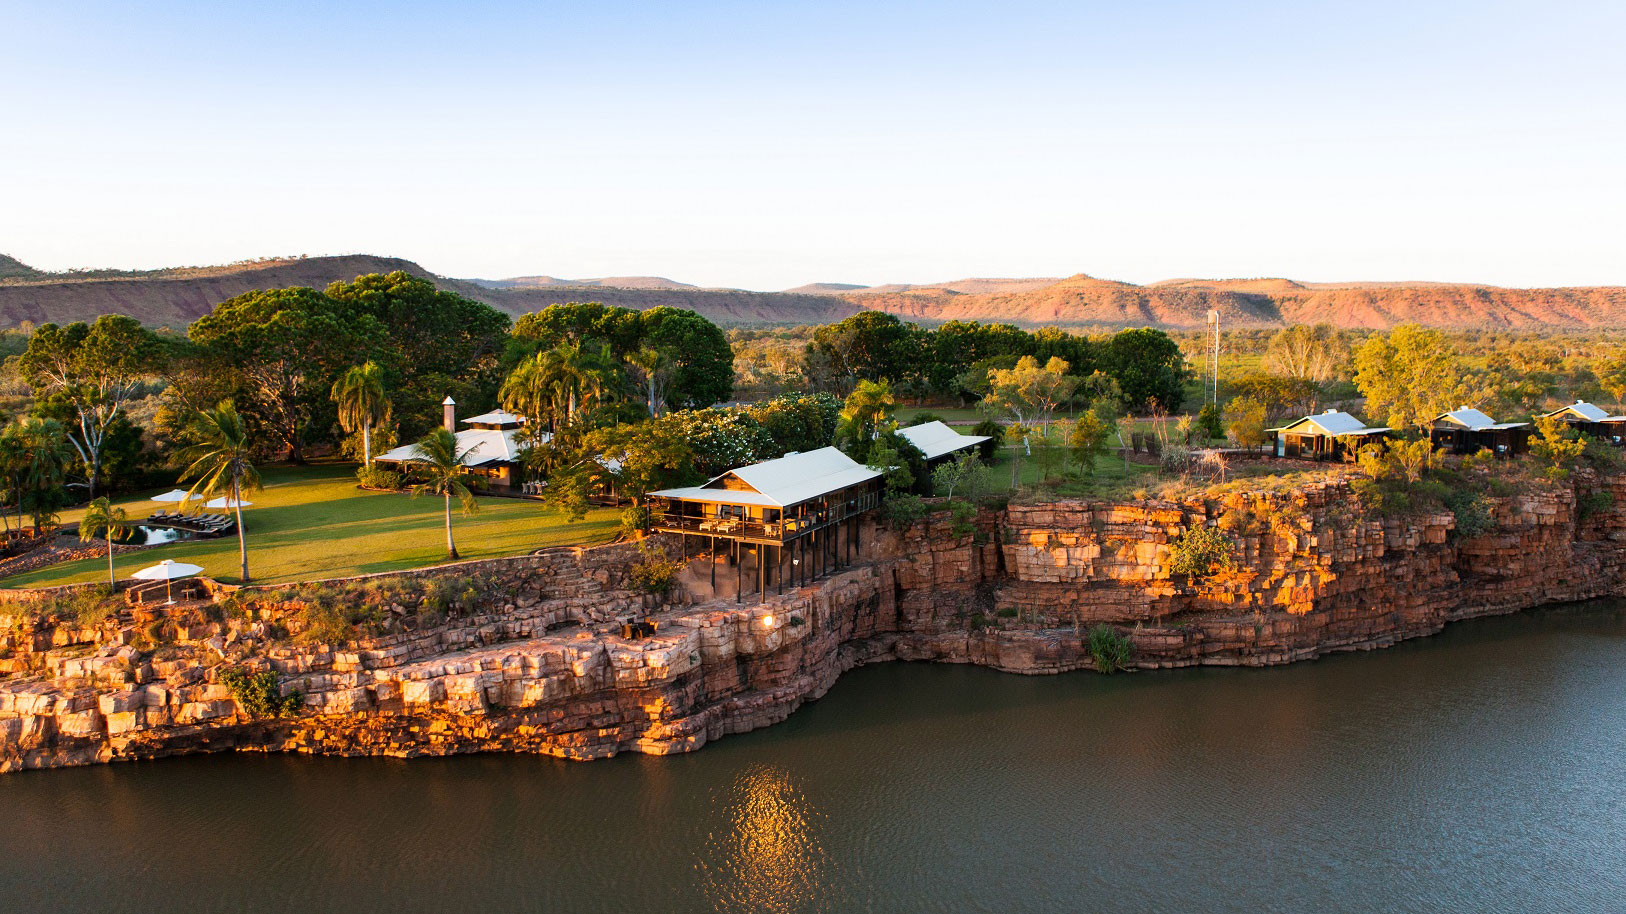 Thumbnail for the listing 'El Questro Wilderness Park – Ultimate Luxury in The Kimberly Australia'